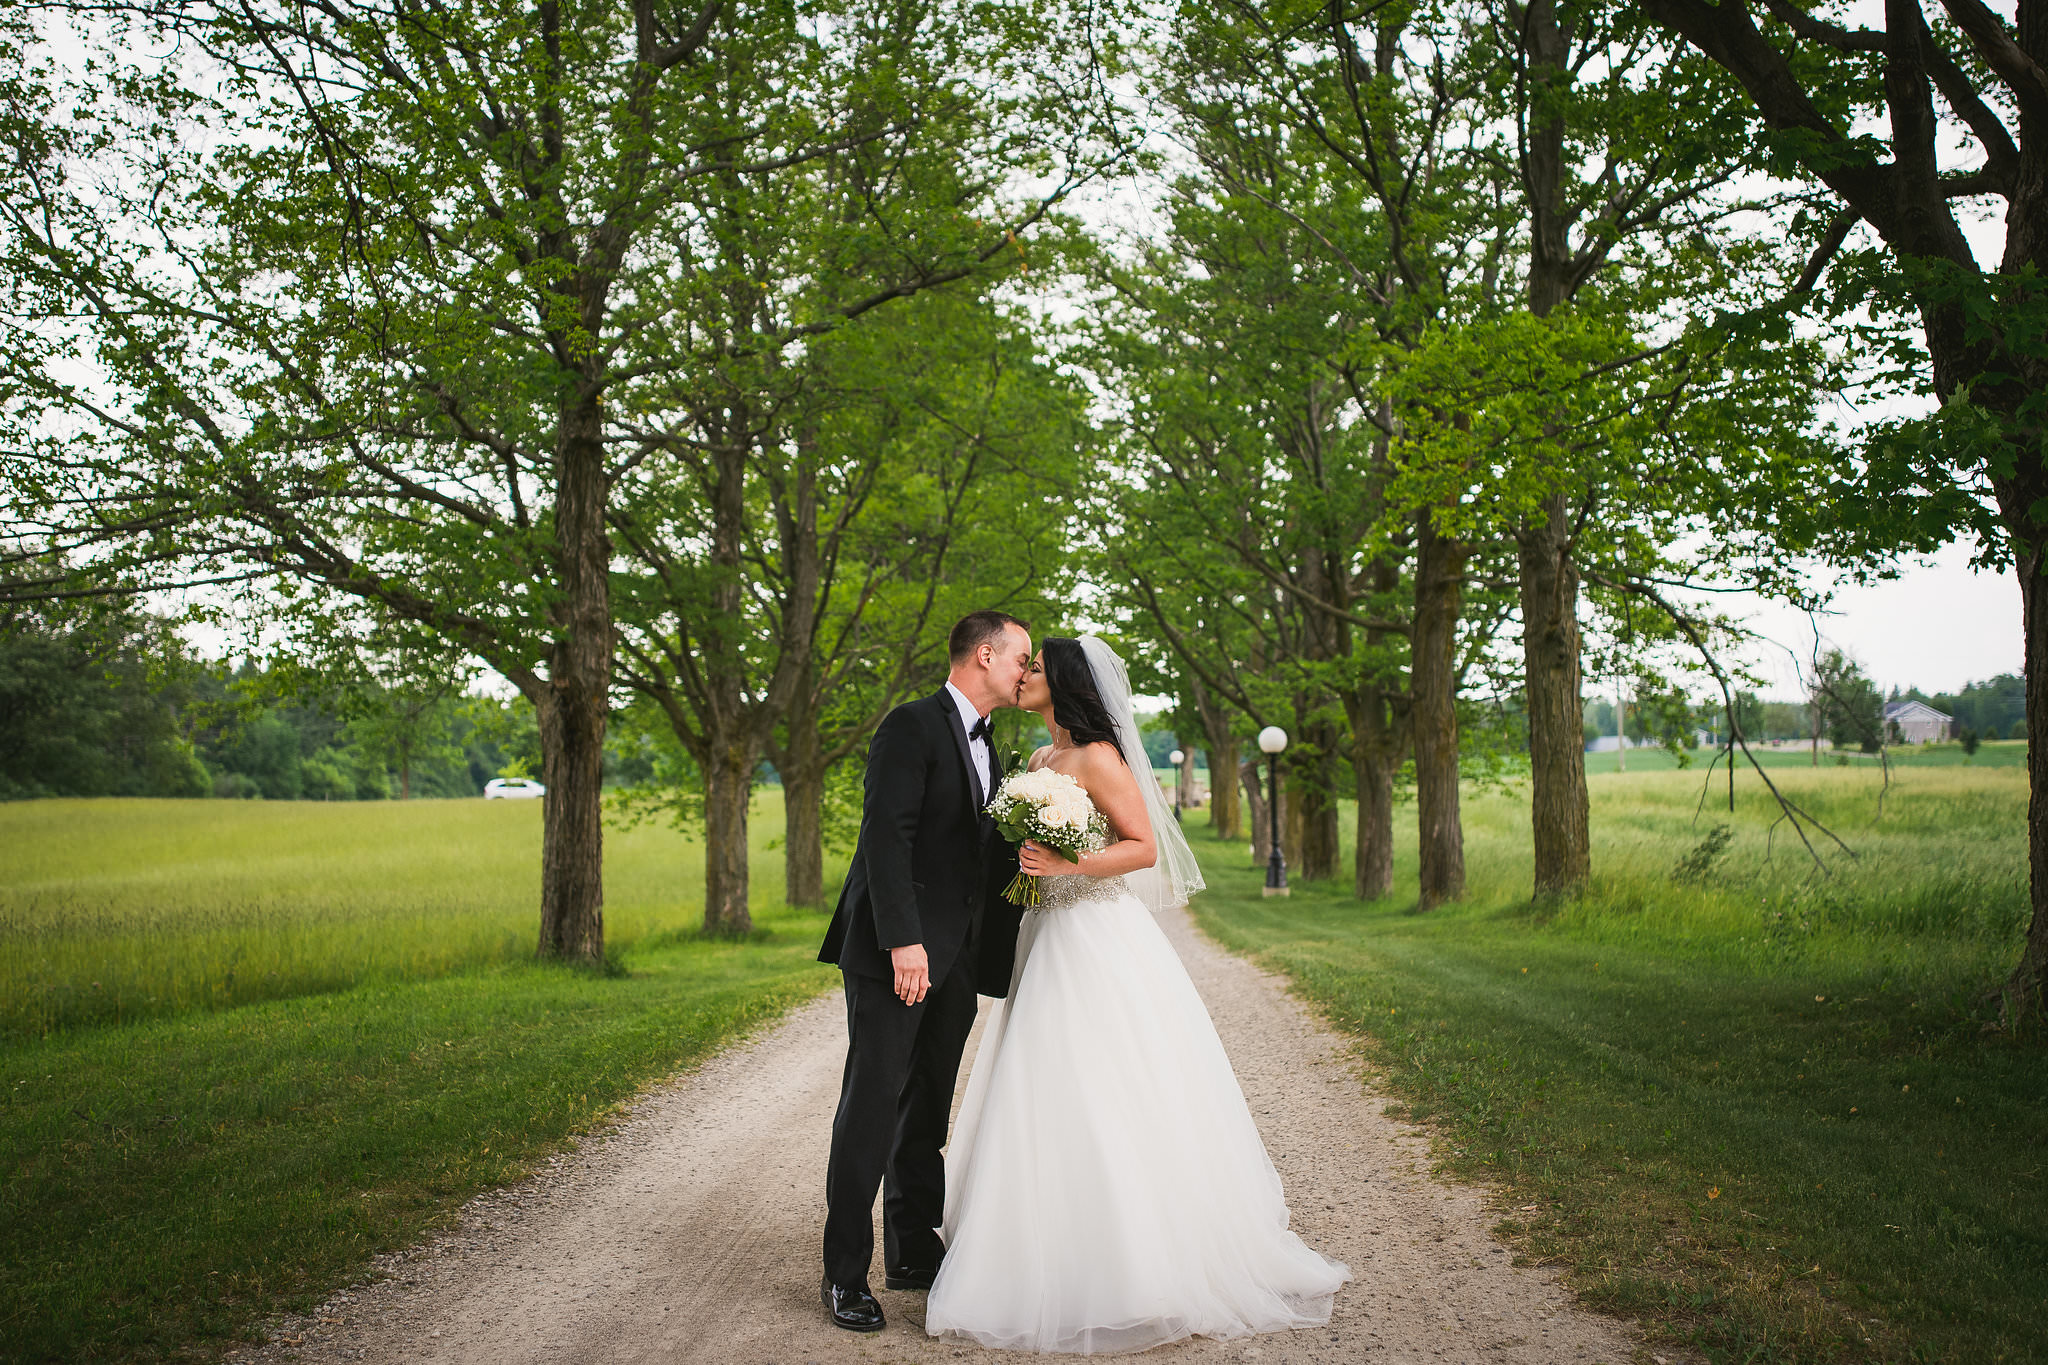 Marguerite Wayne Stoneacre Farm Puslinch Wedding Photos 232 - Stoneacre Farm Wedding